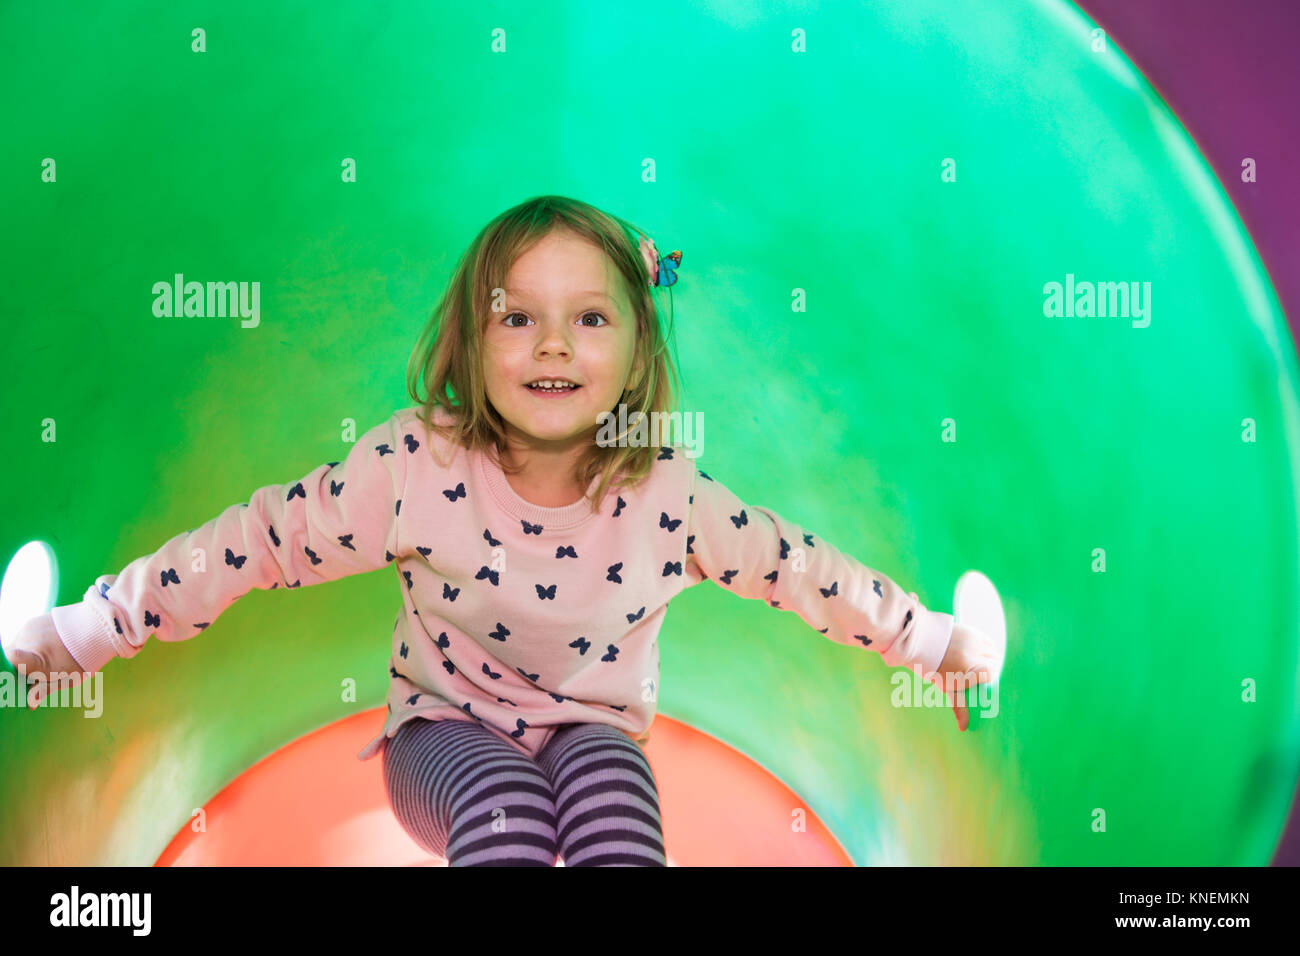 Girl in tube on climbing frame looking at camera smiling - Stock Image